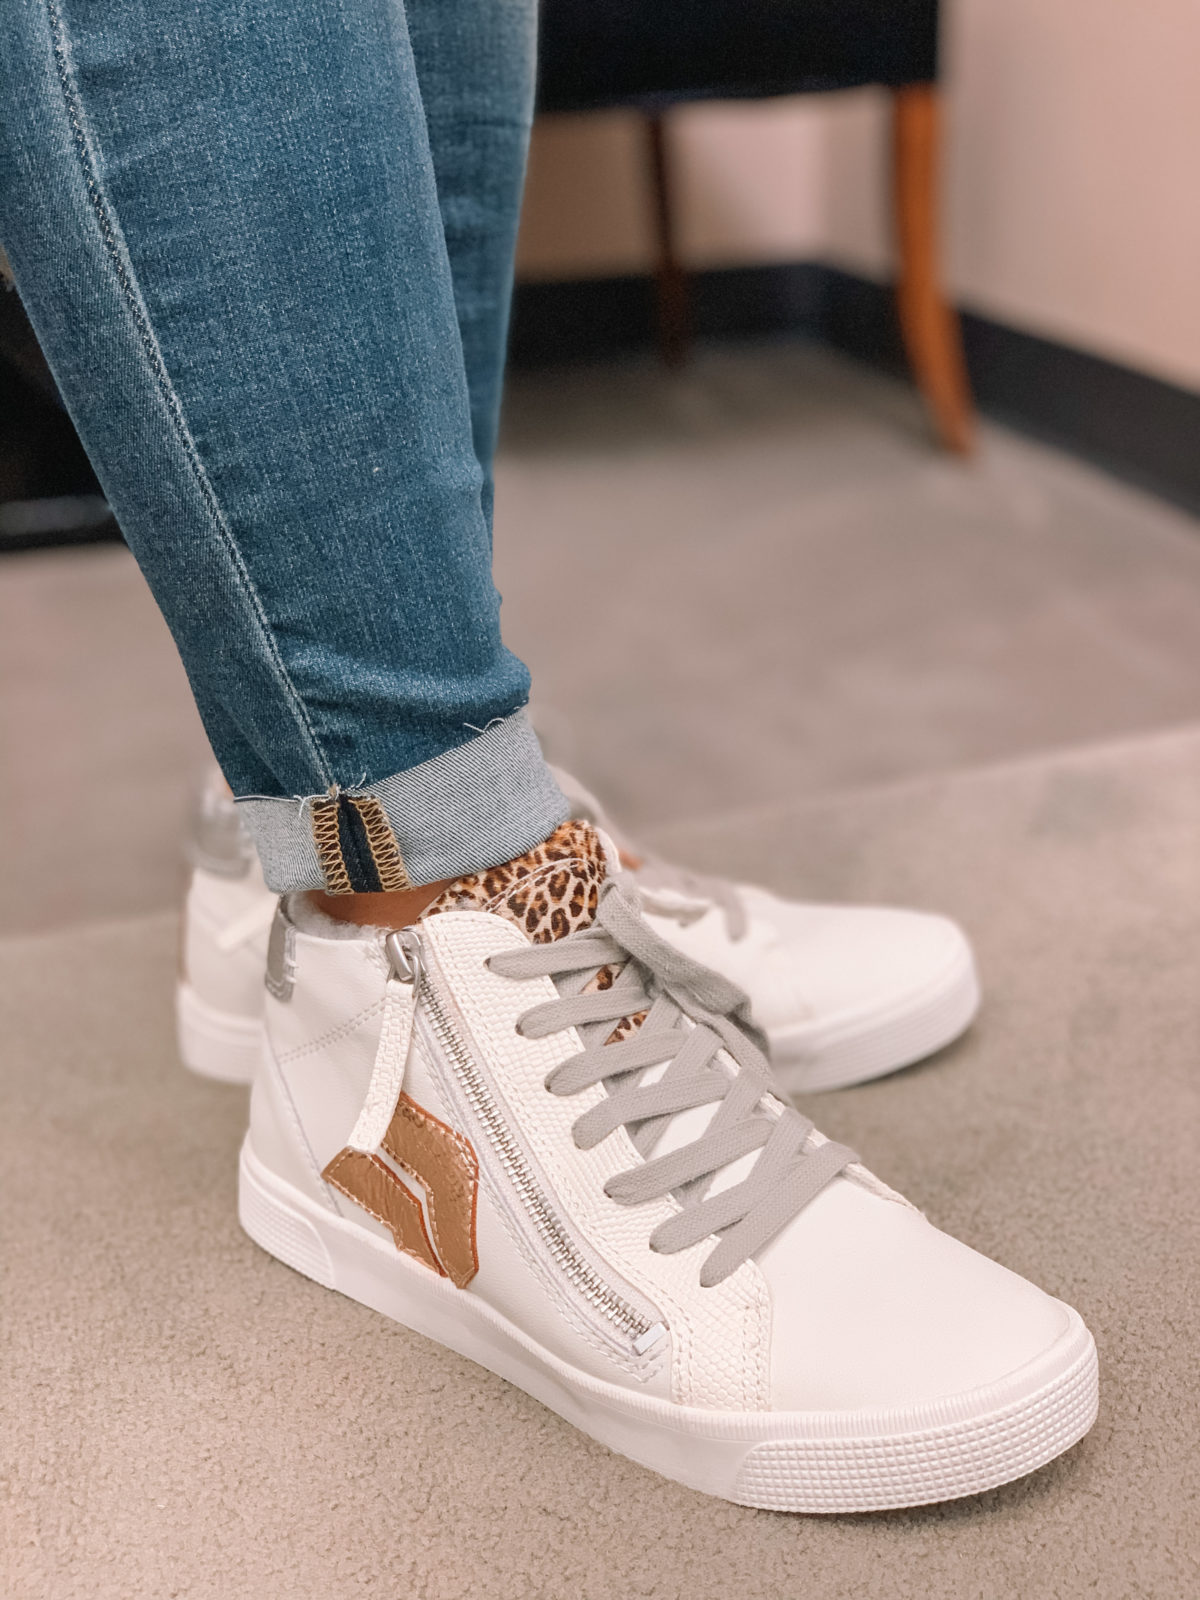 Nordstrom Anniversary Sale 2020 jeans sneakers